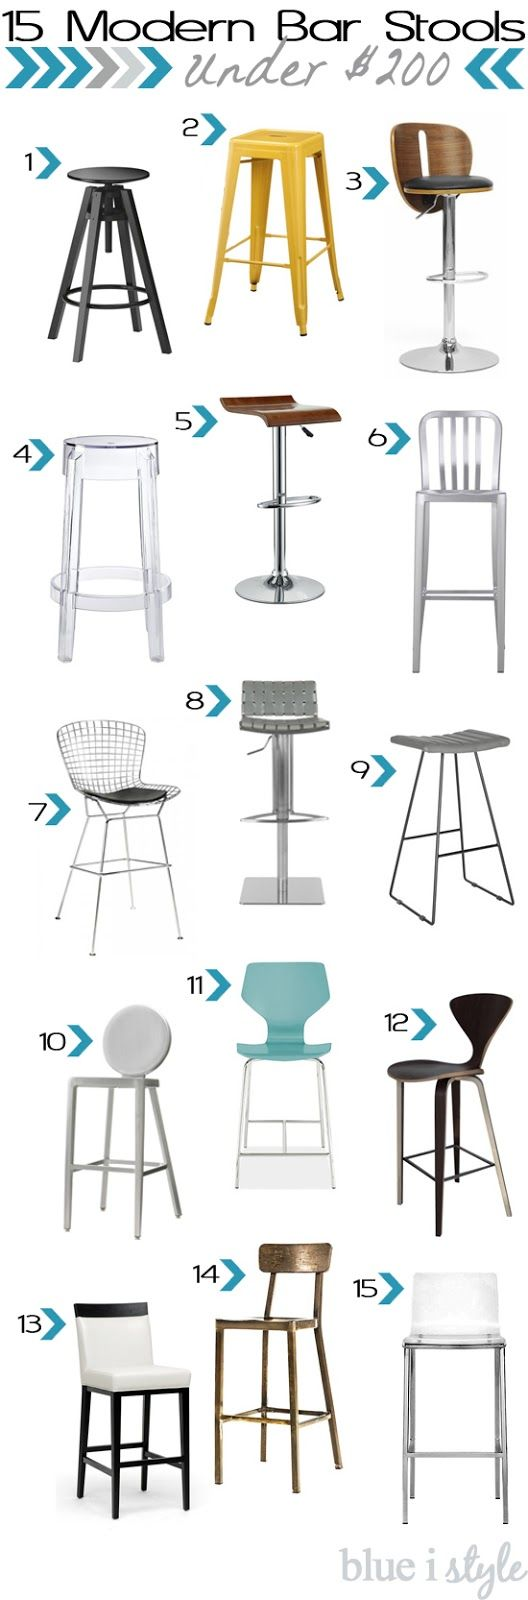 {shopping for style} 15 Modern Bar Stools Under $200 & the Ones We Picked For Our Kitchen